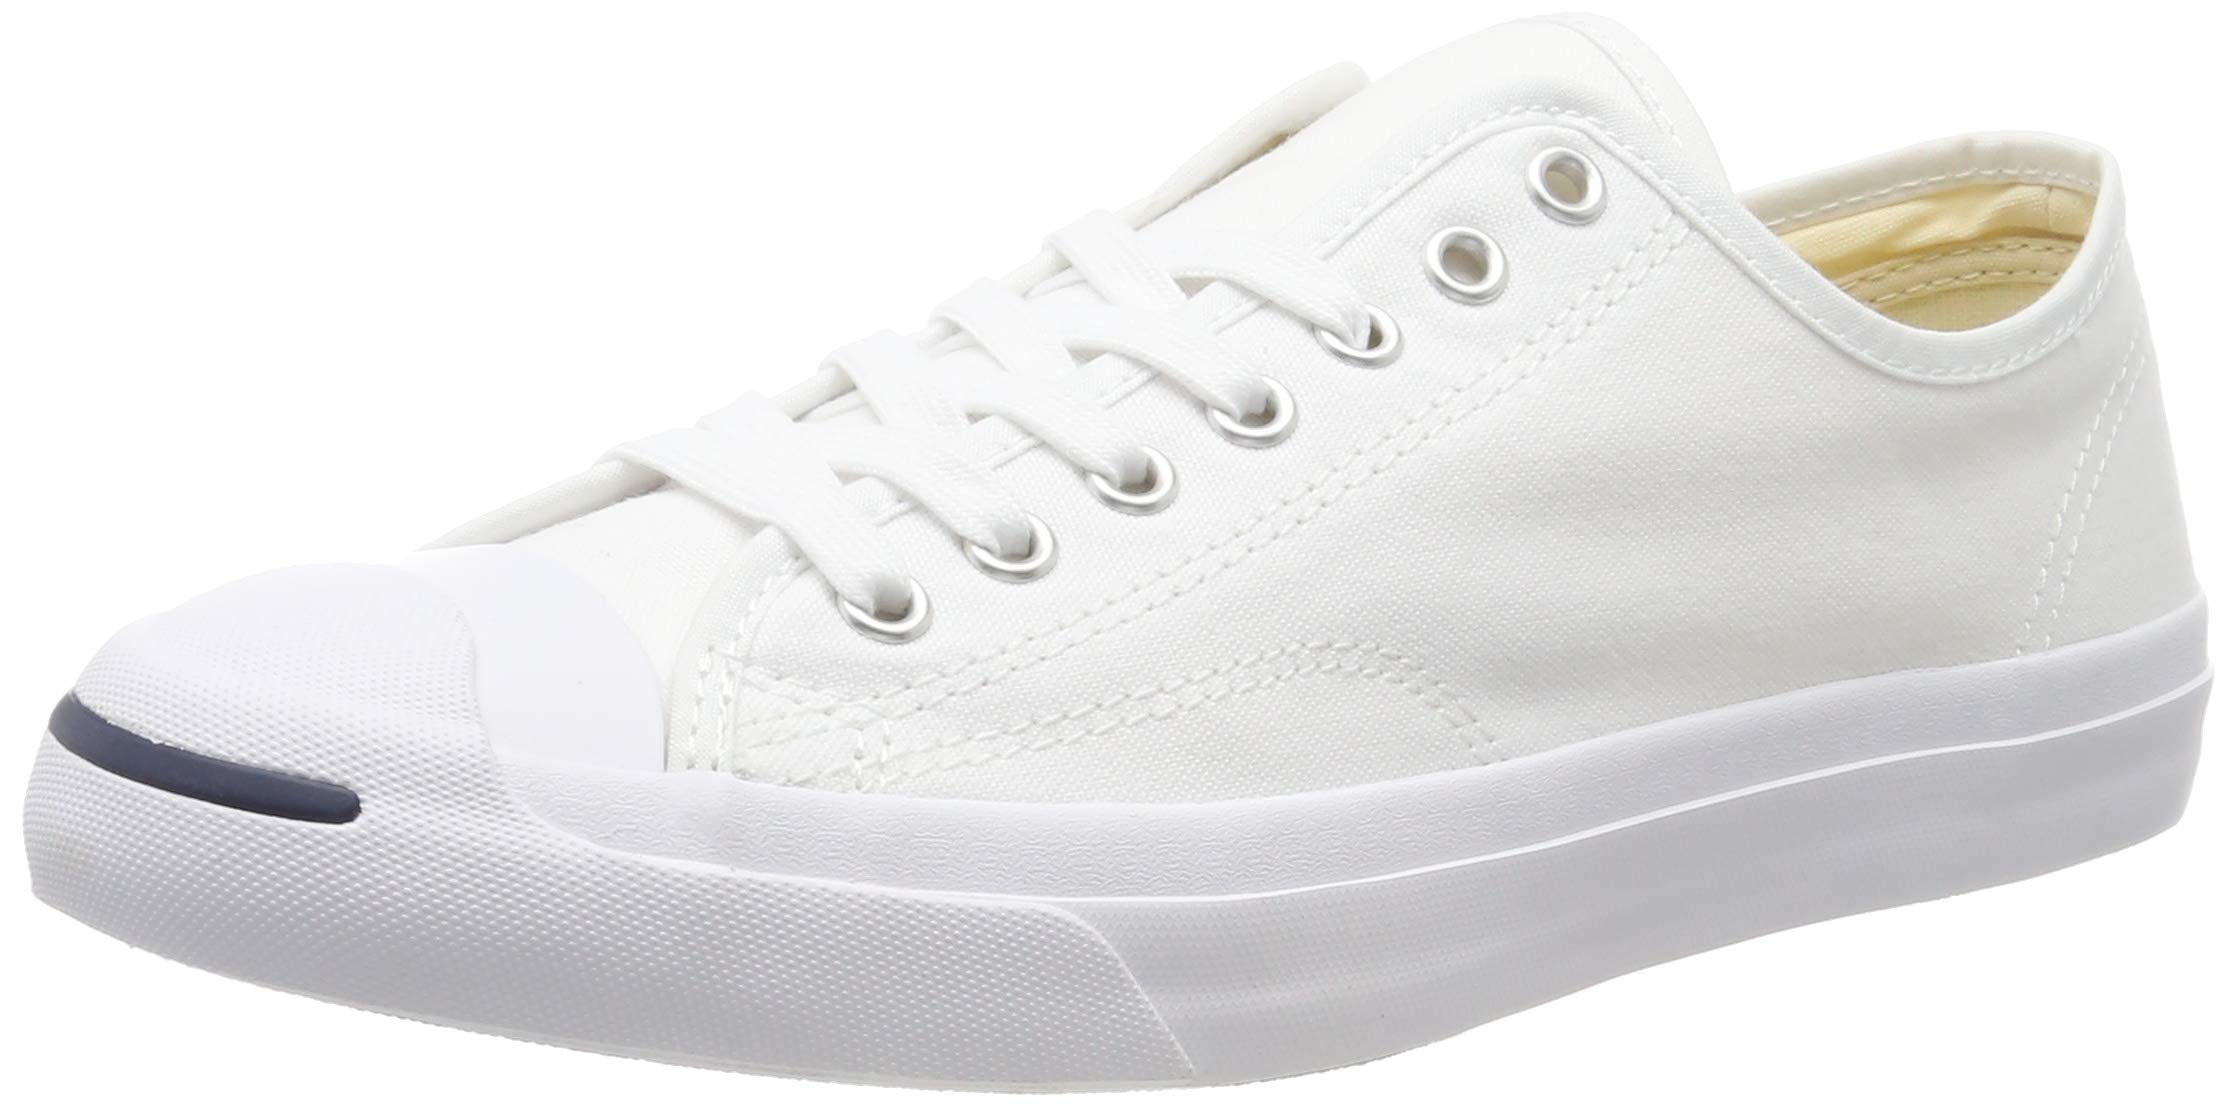 Converse Jack Purcell CP Ox White White, Size 8 D Mens, 9.5 Womens US